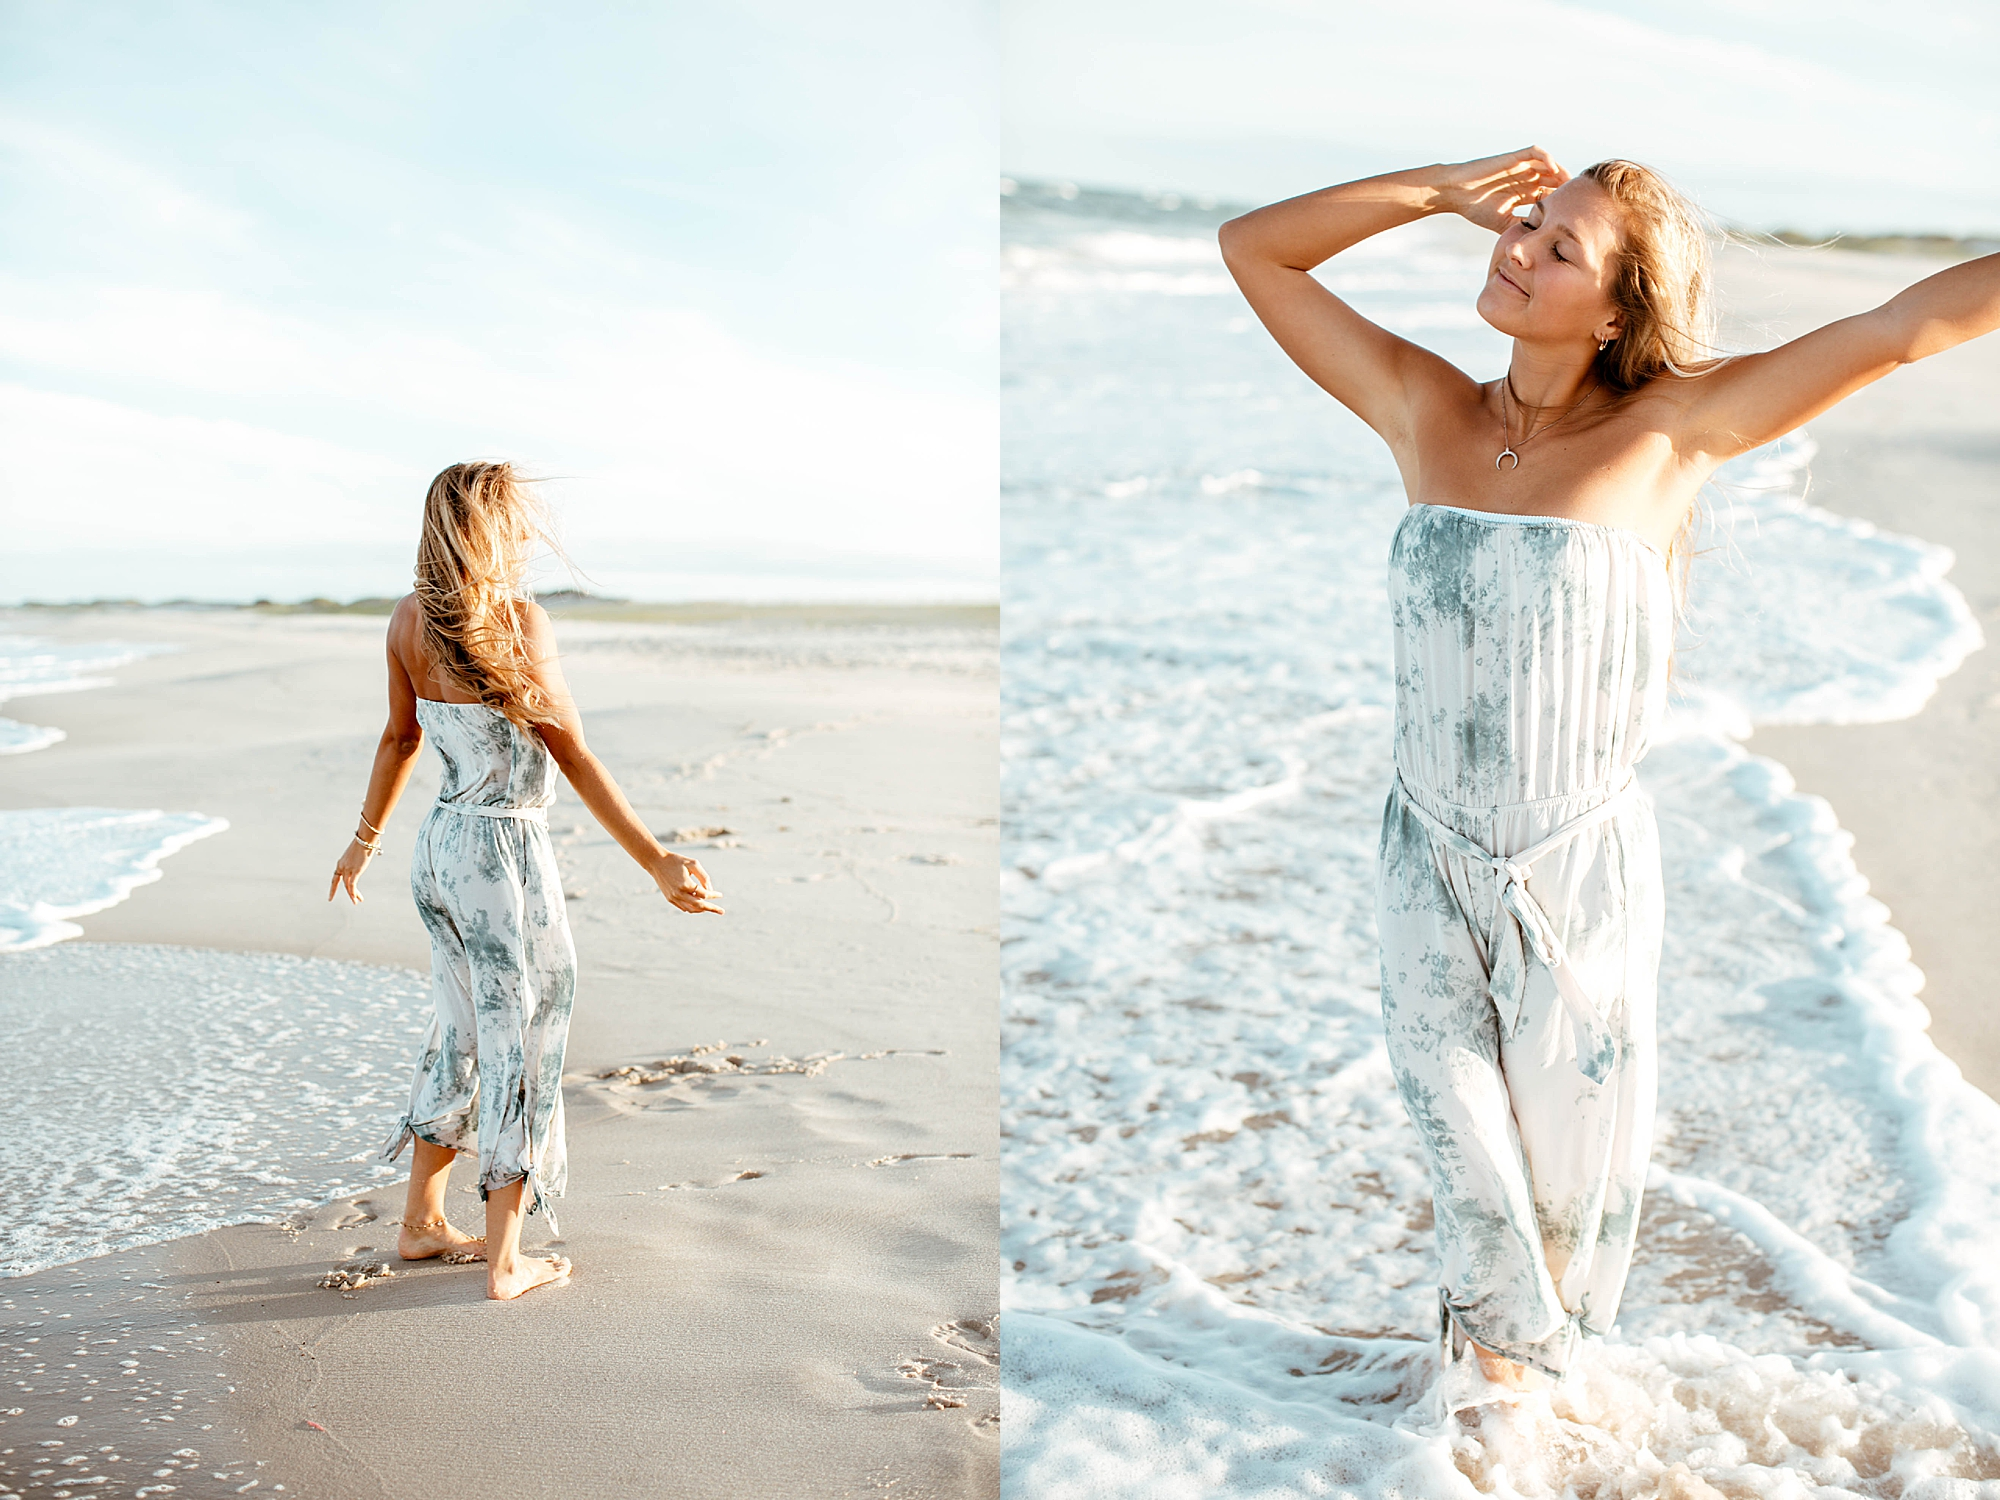 Natural and Bright Seaside Park New Jersey Boho Lifestlyle Beach Portrait Photography by Kelee Bovelle_0015.jpg